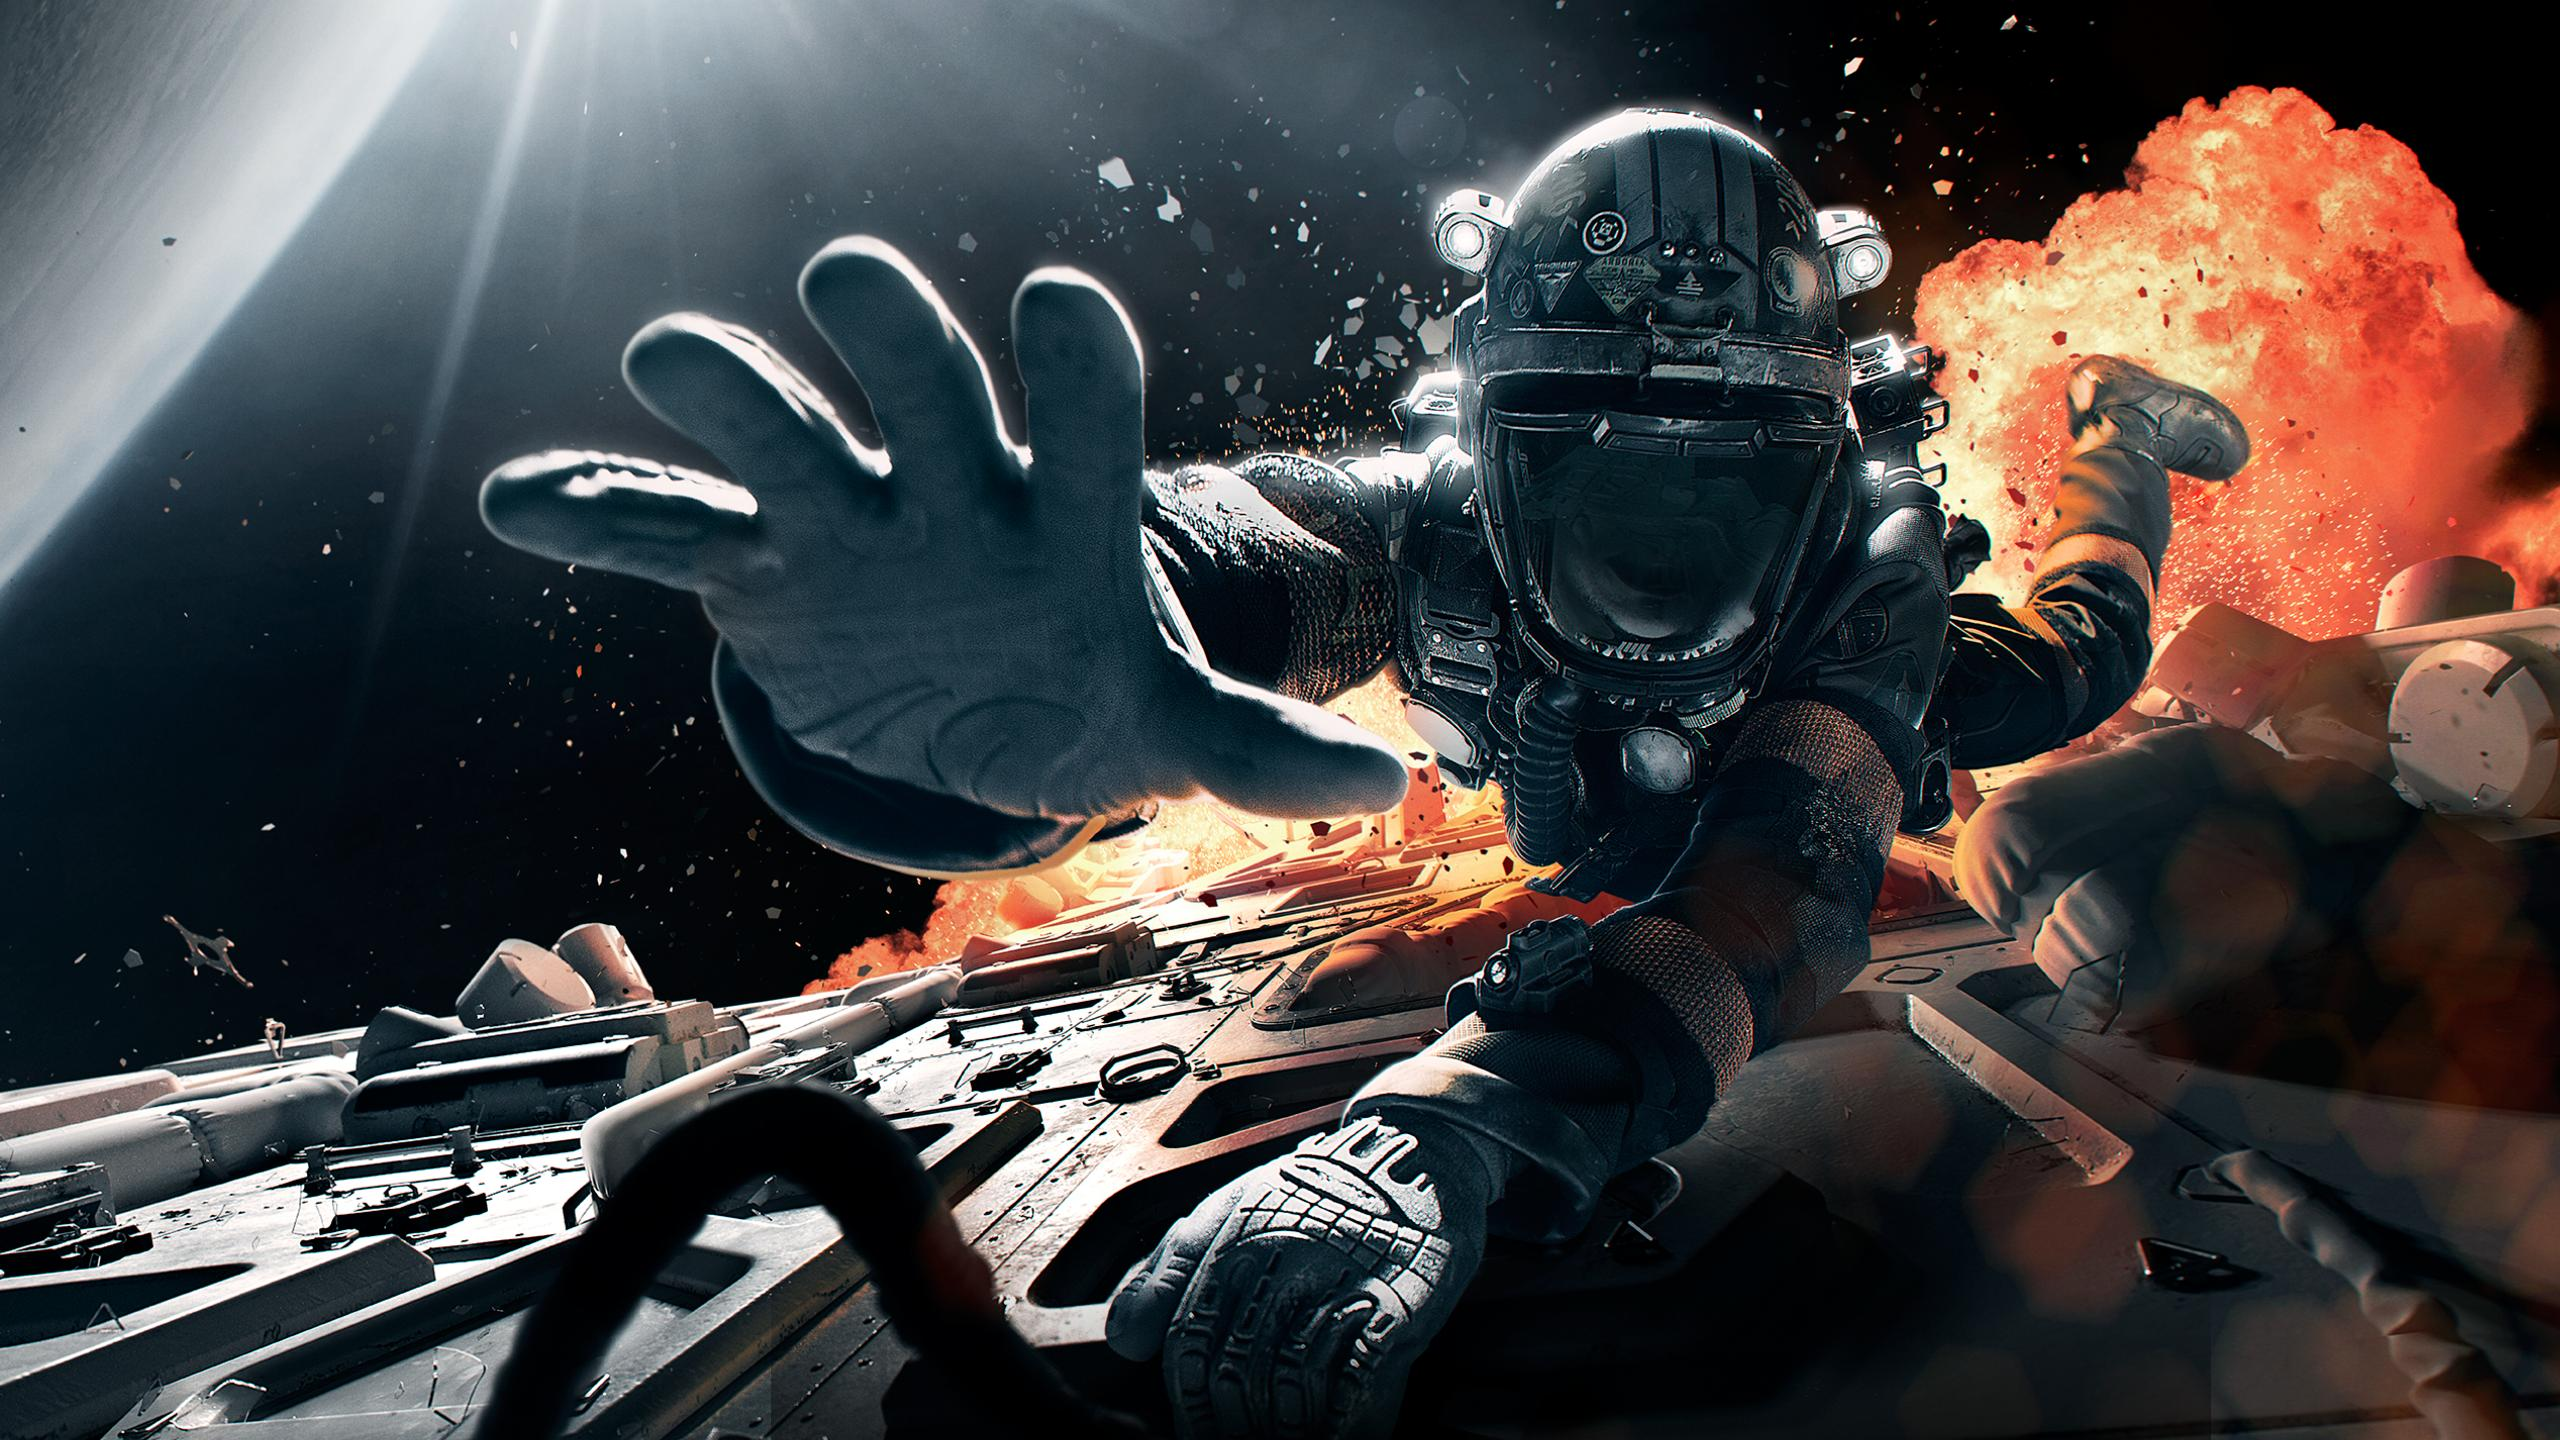 General 2560x1440 The Expanse TV Series space spaceship astronaut spacesuit explosion science fiction